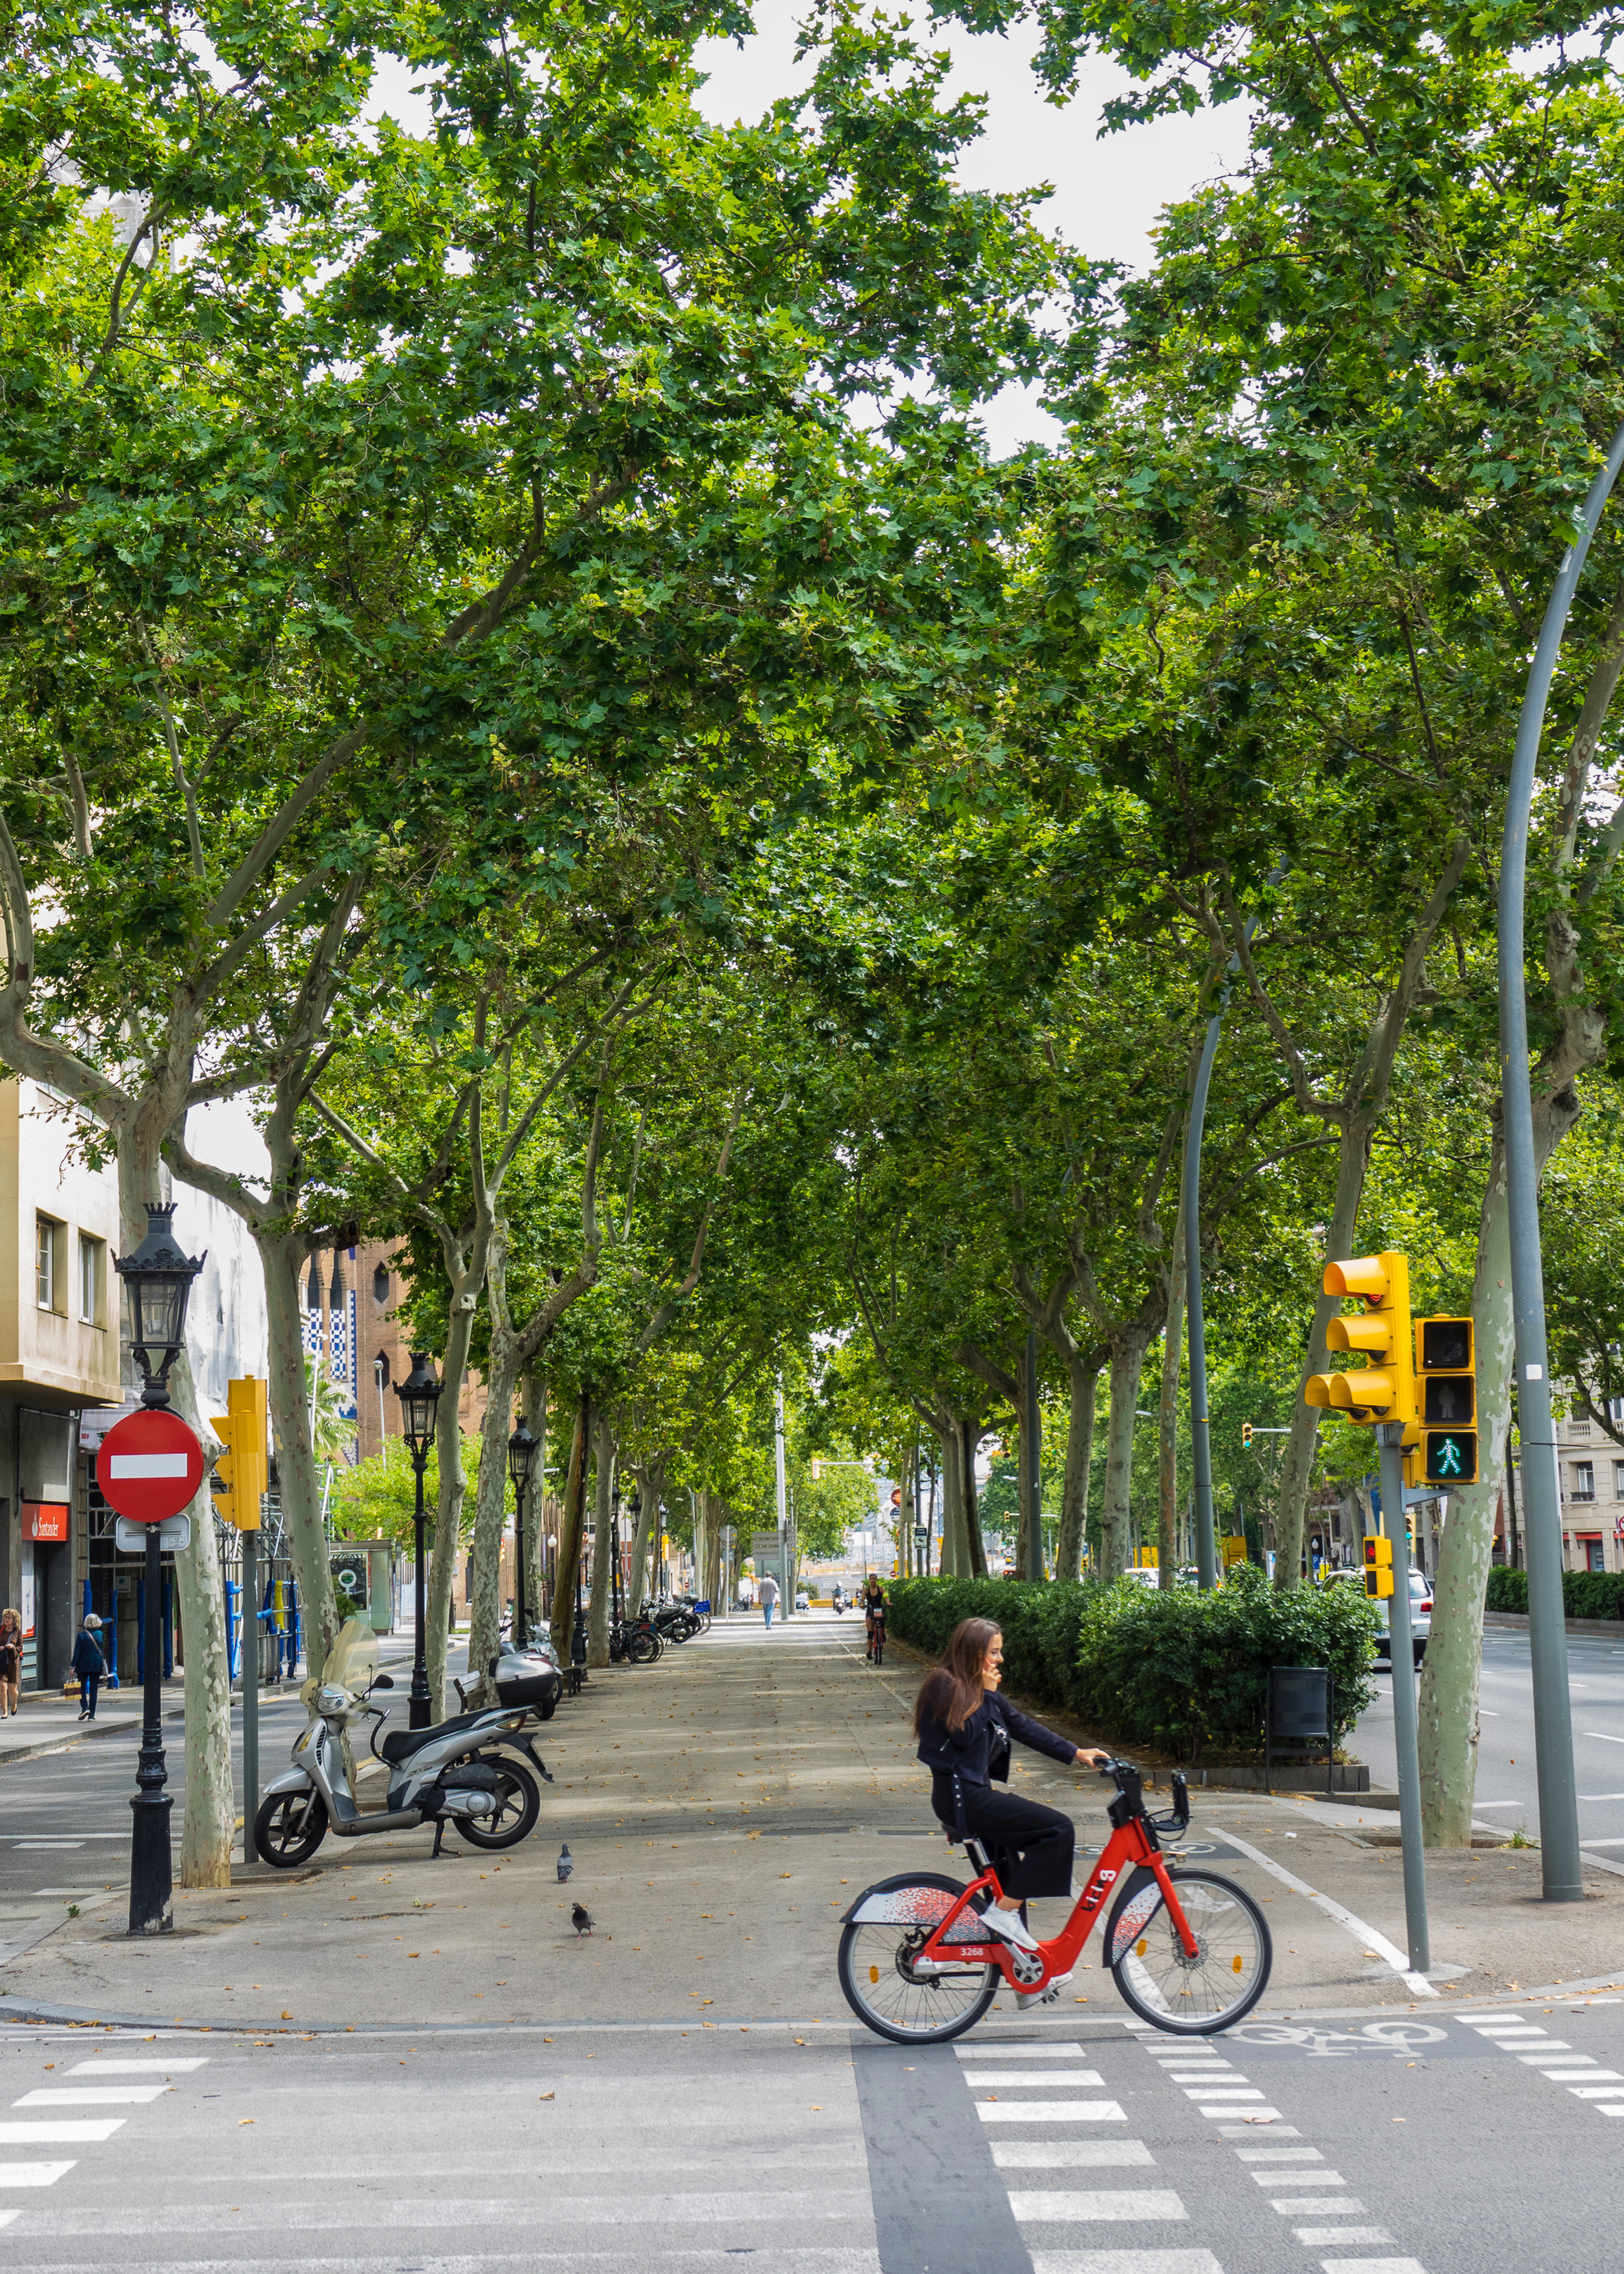 """I don't know why I like this photo so much, but it seems very """"Barcelona"""". People riding bikes, wide walking paths on calm city streets. It's such a great city."""